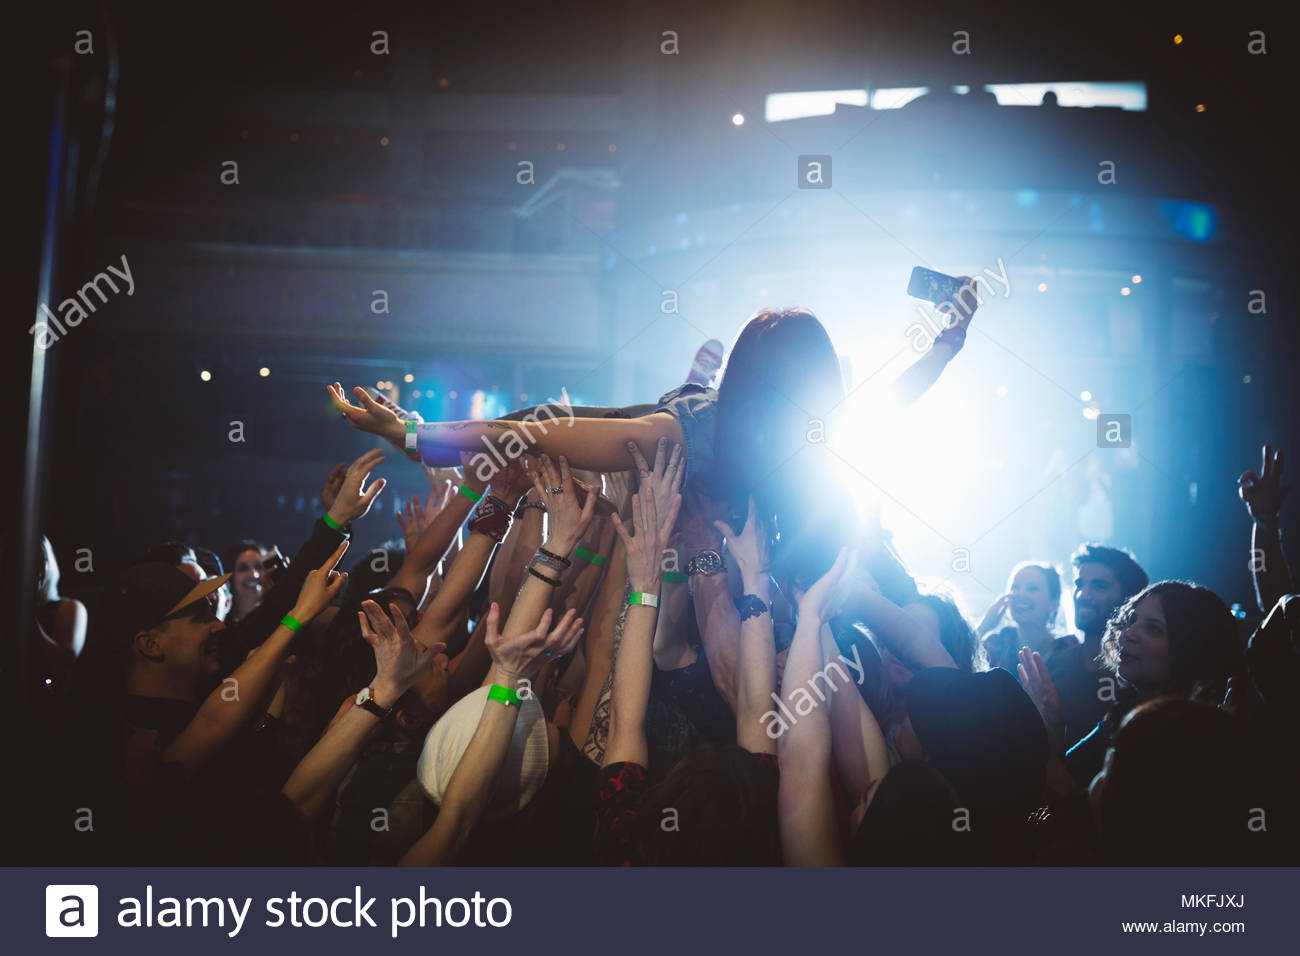 Woman with camera phone crowdsurfing at music concert in nightclub - Stock Image